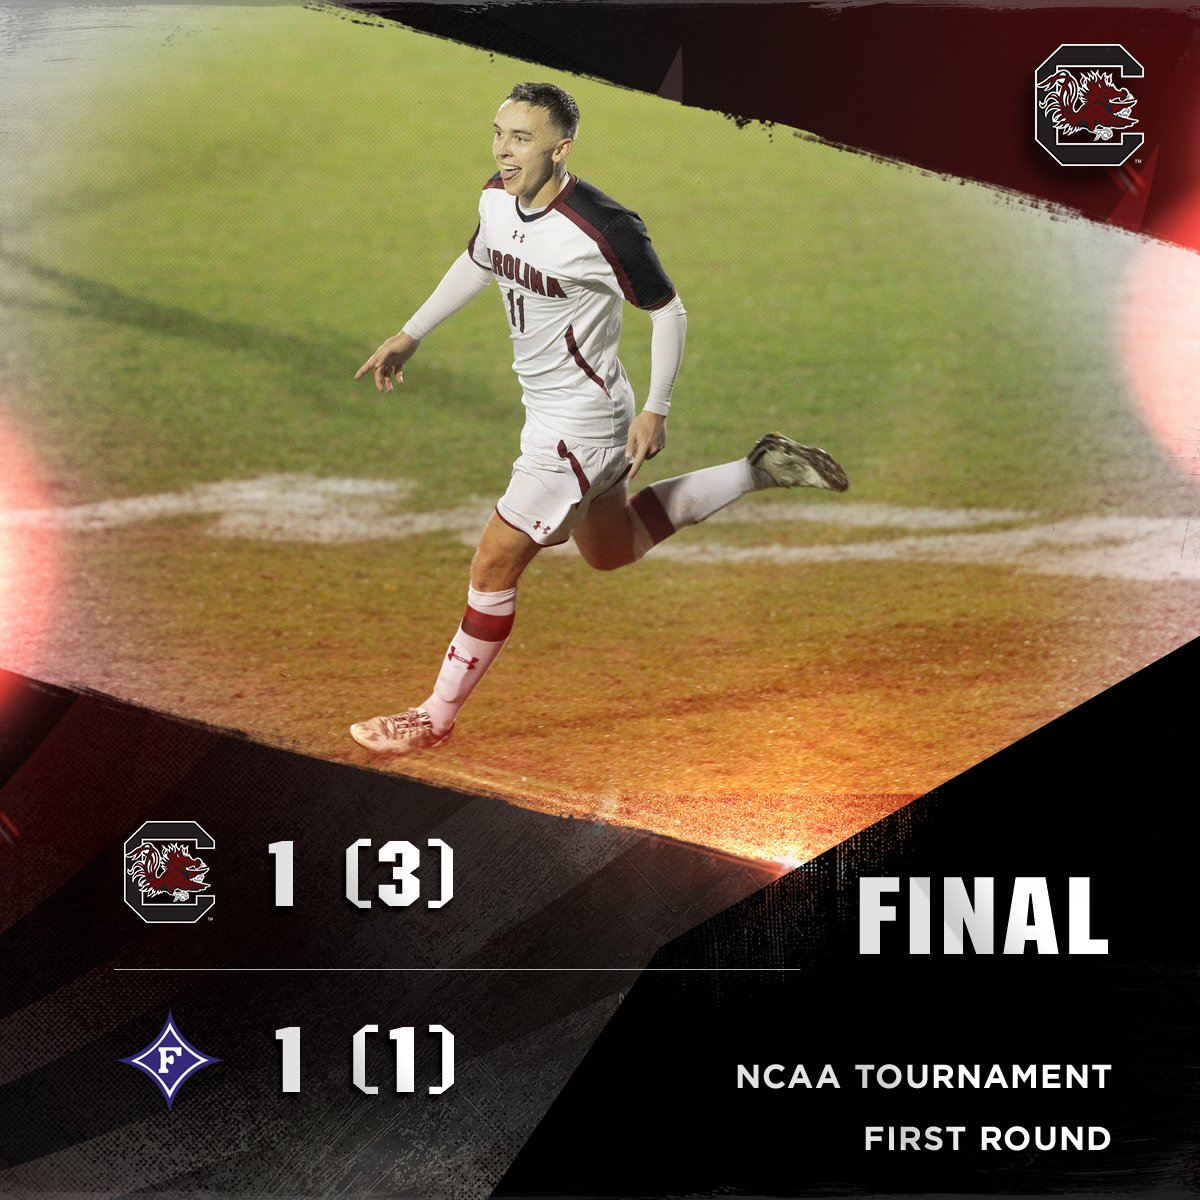 #GAMECOCKS ADVANCE!! South Carolina takes PKs 3-1 to cap a thriller against Furman. https://t.co/BcuRSylS8y